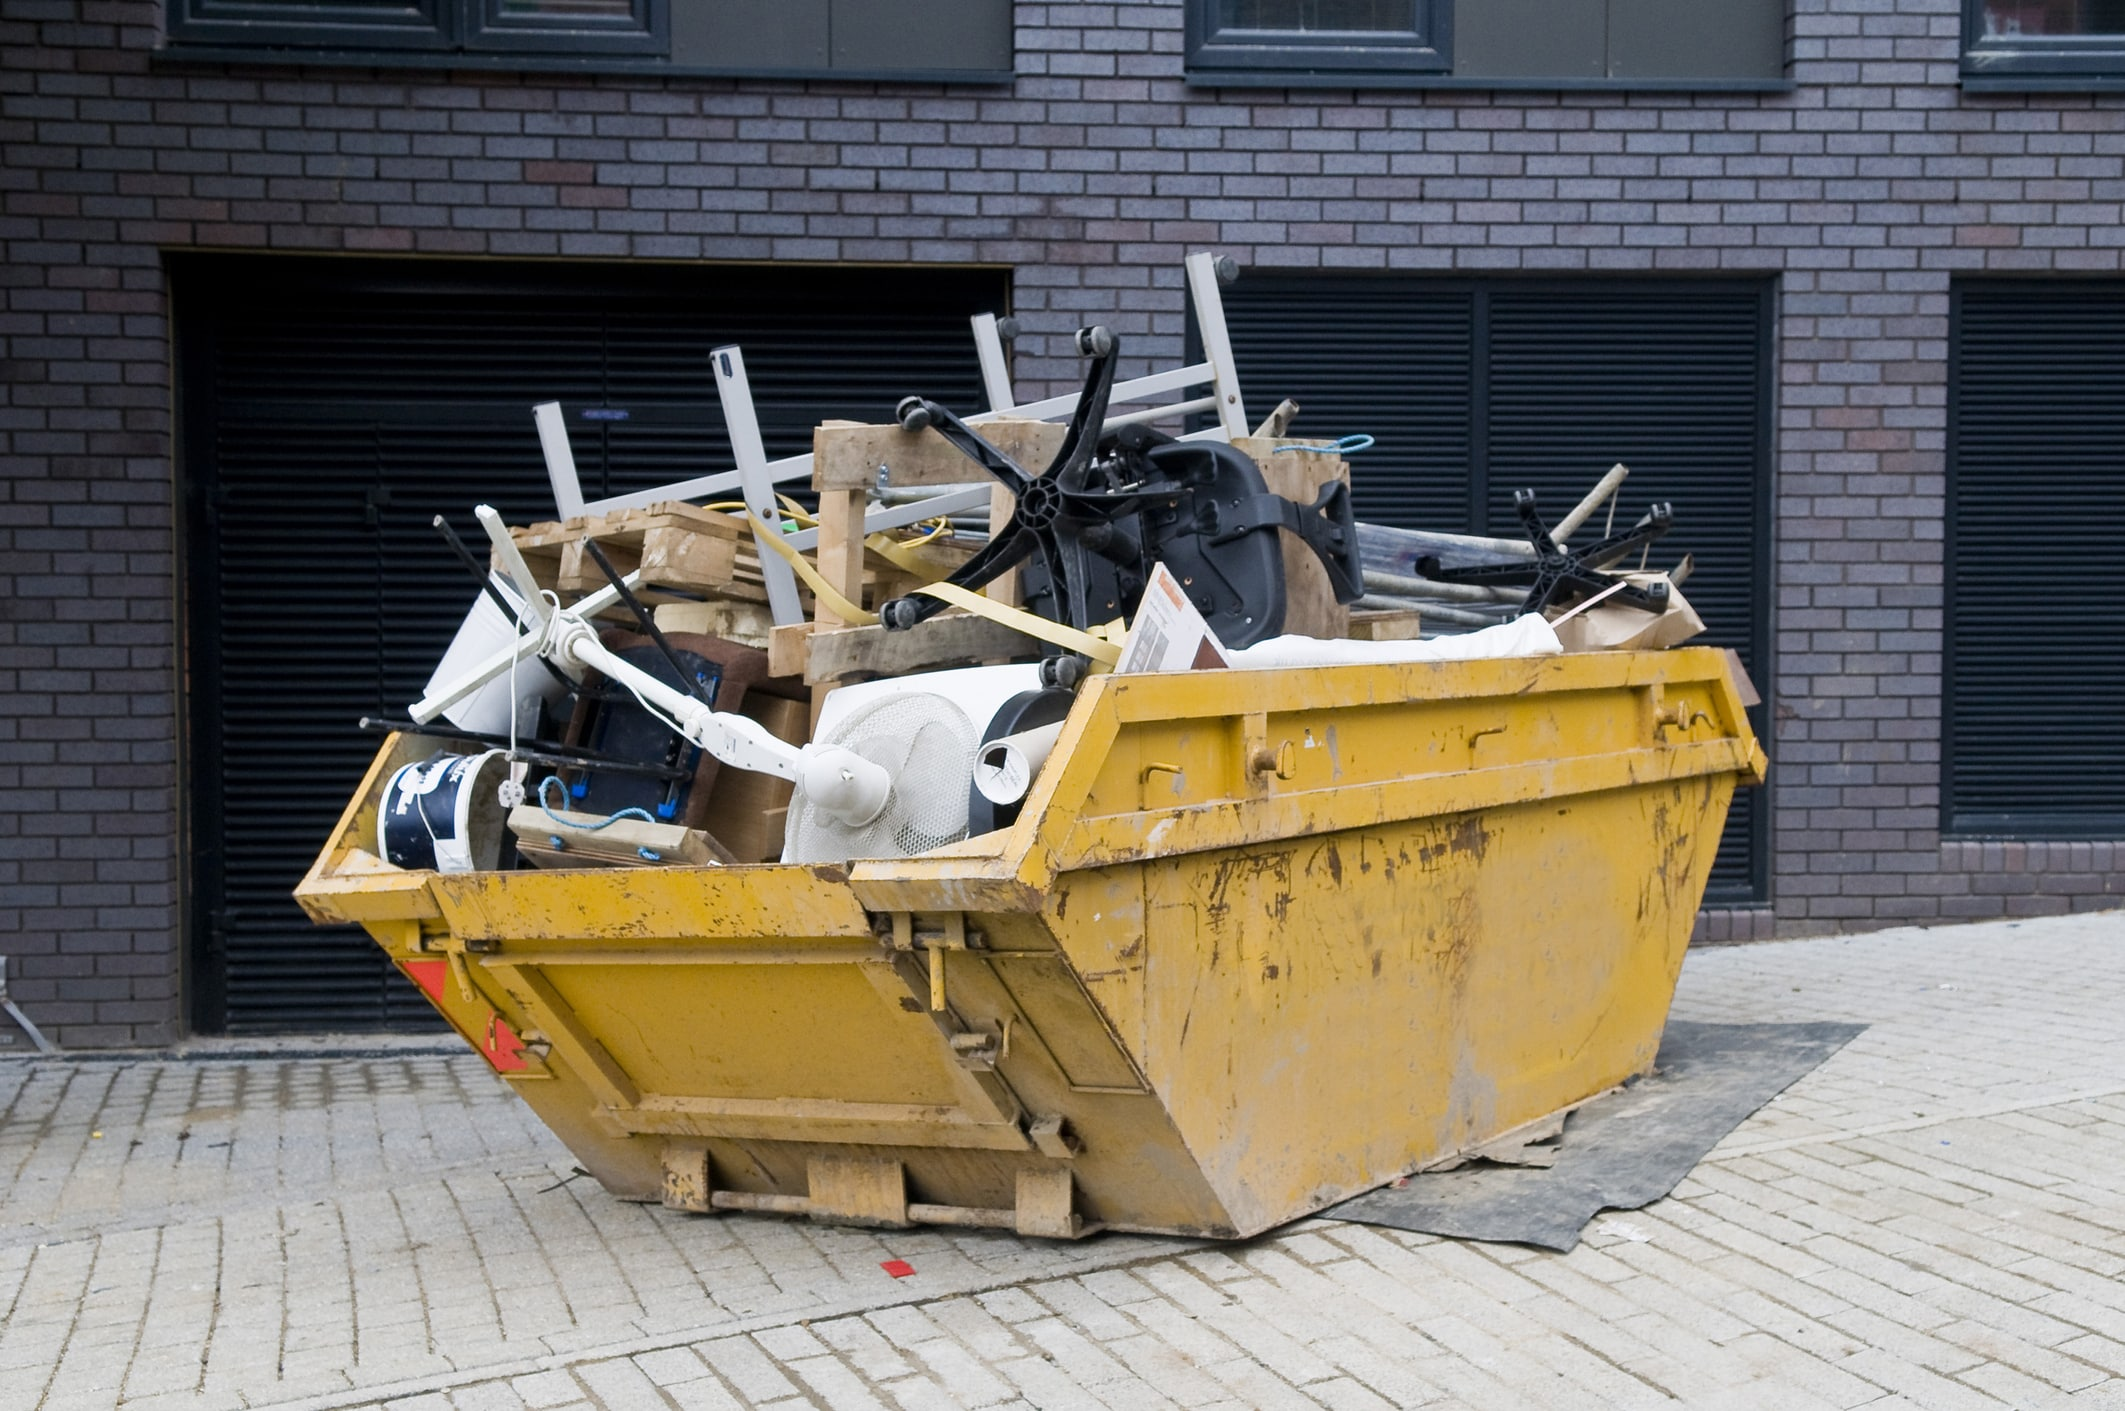 Yellow industrial skip full of disused office equipment